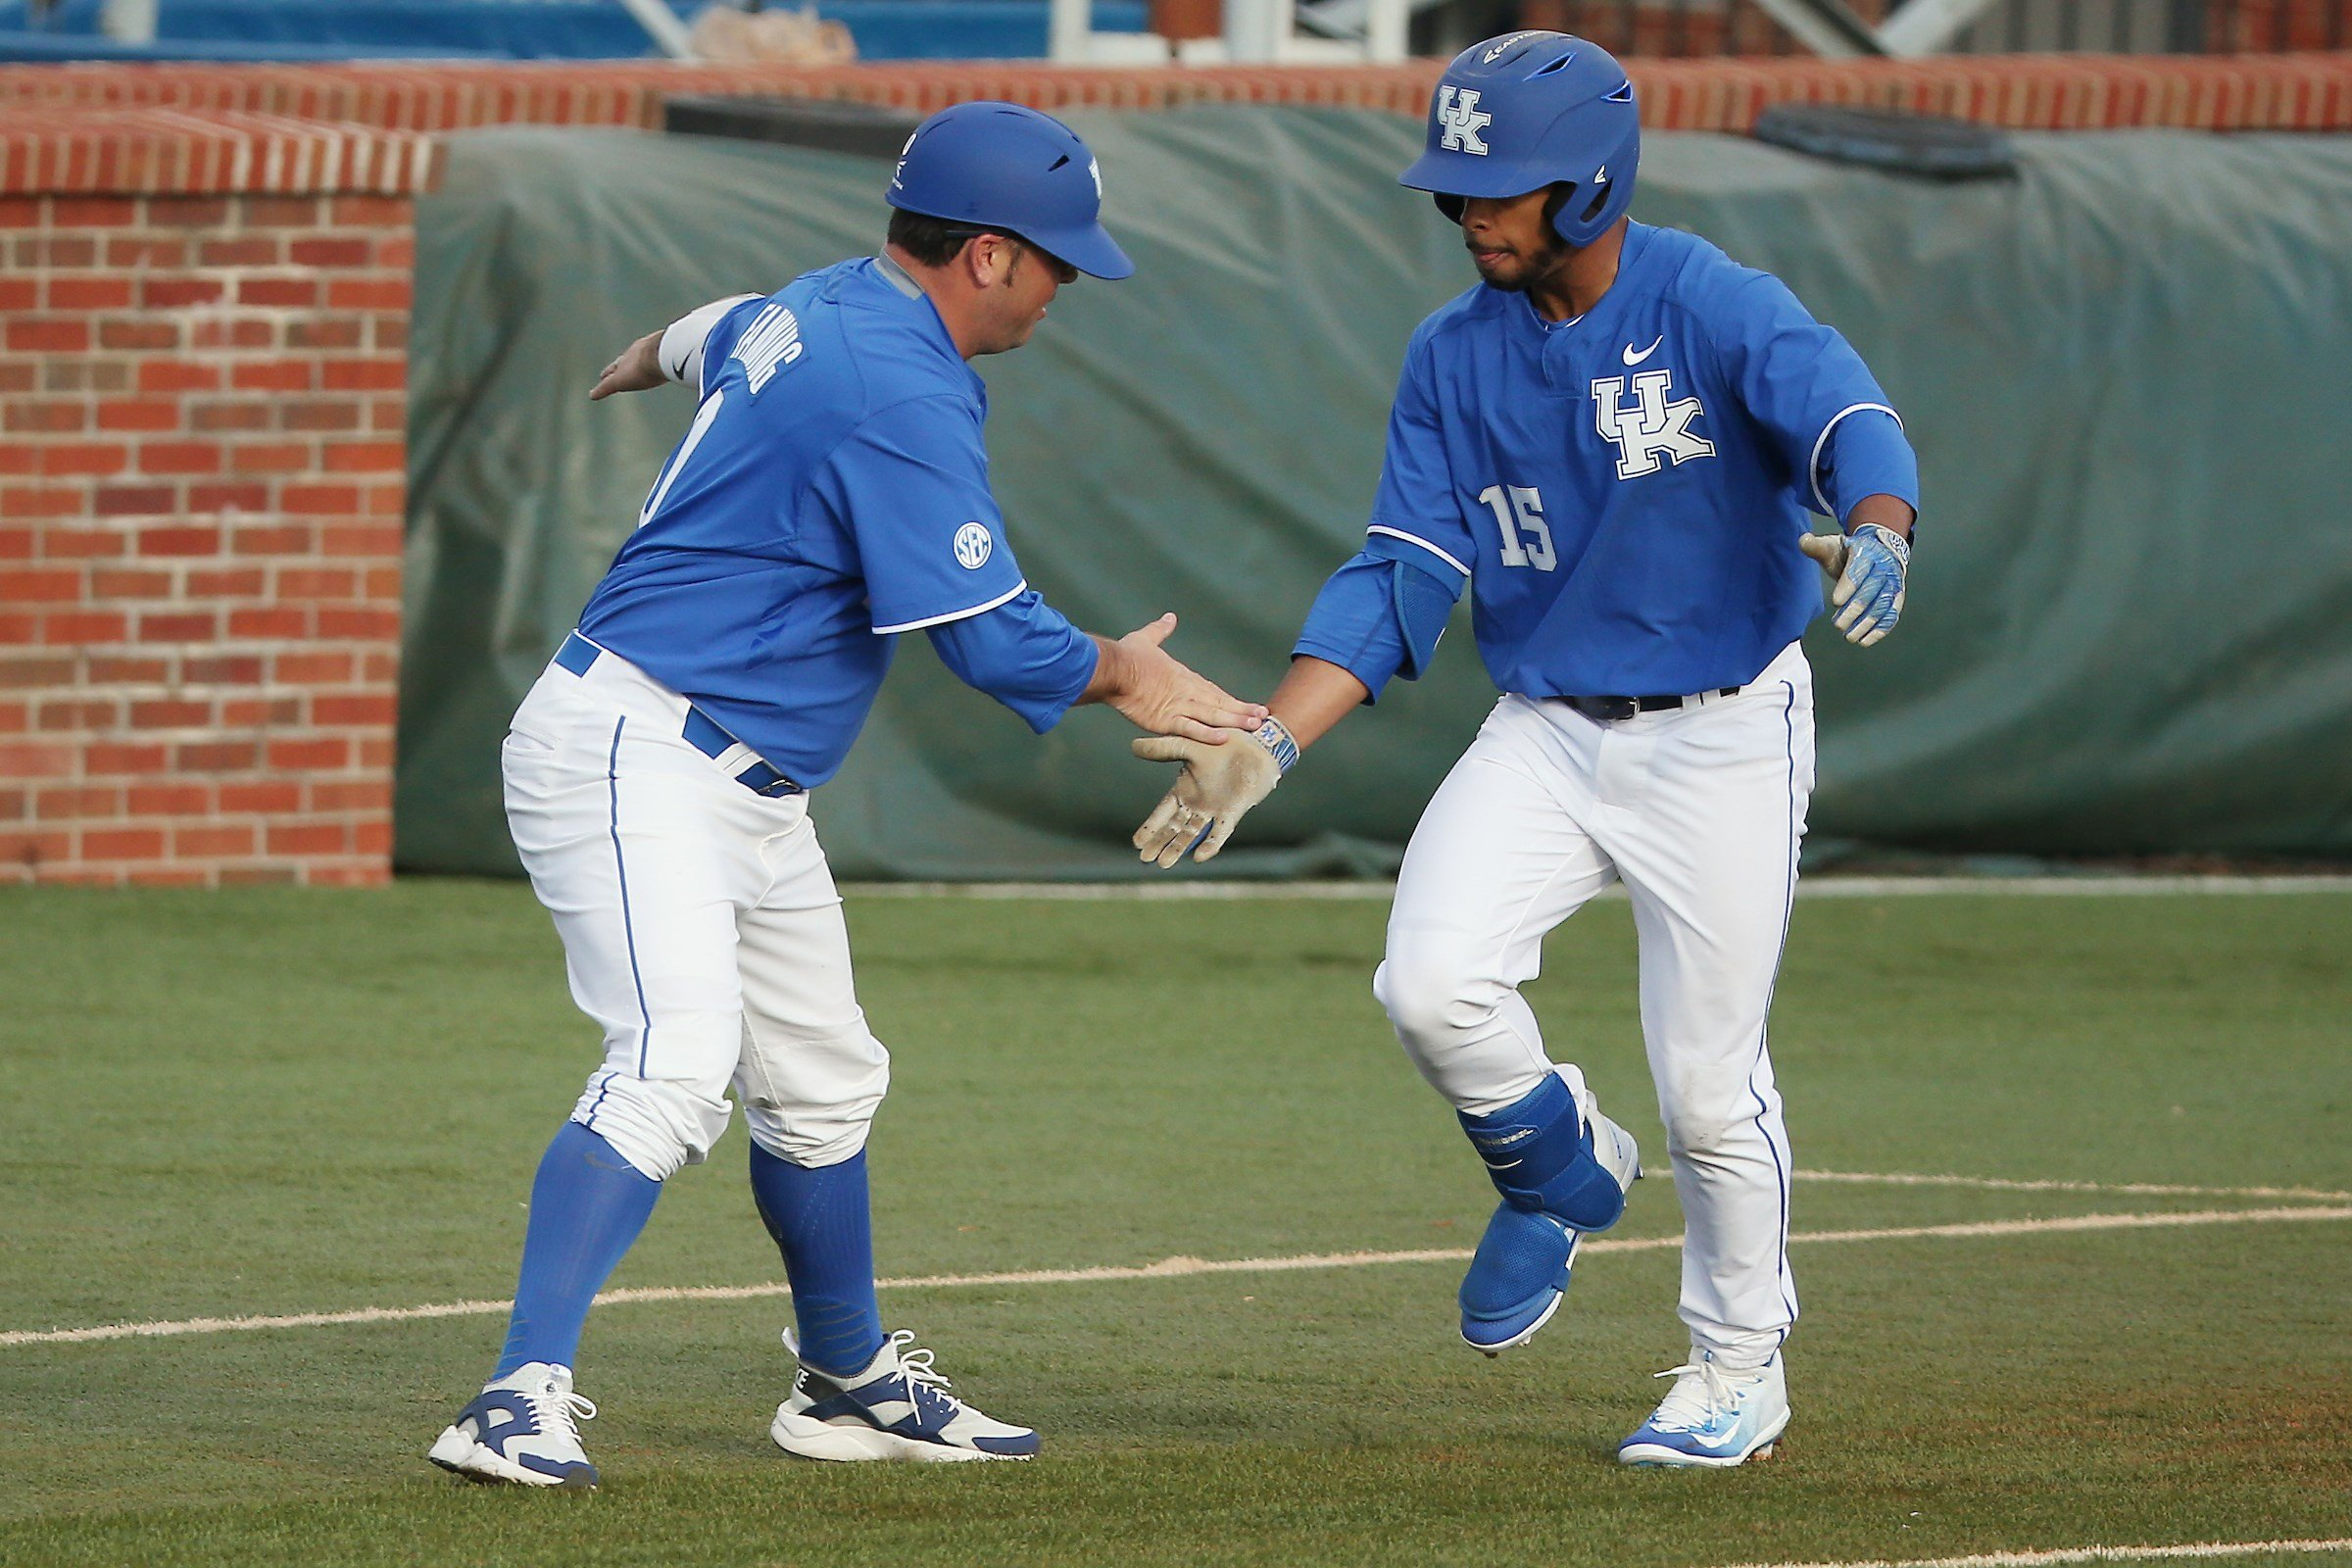 Barnhill's No-Hitter Spoils Kentucky's Solid Pitching Performance